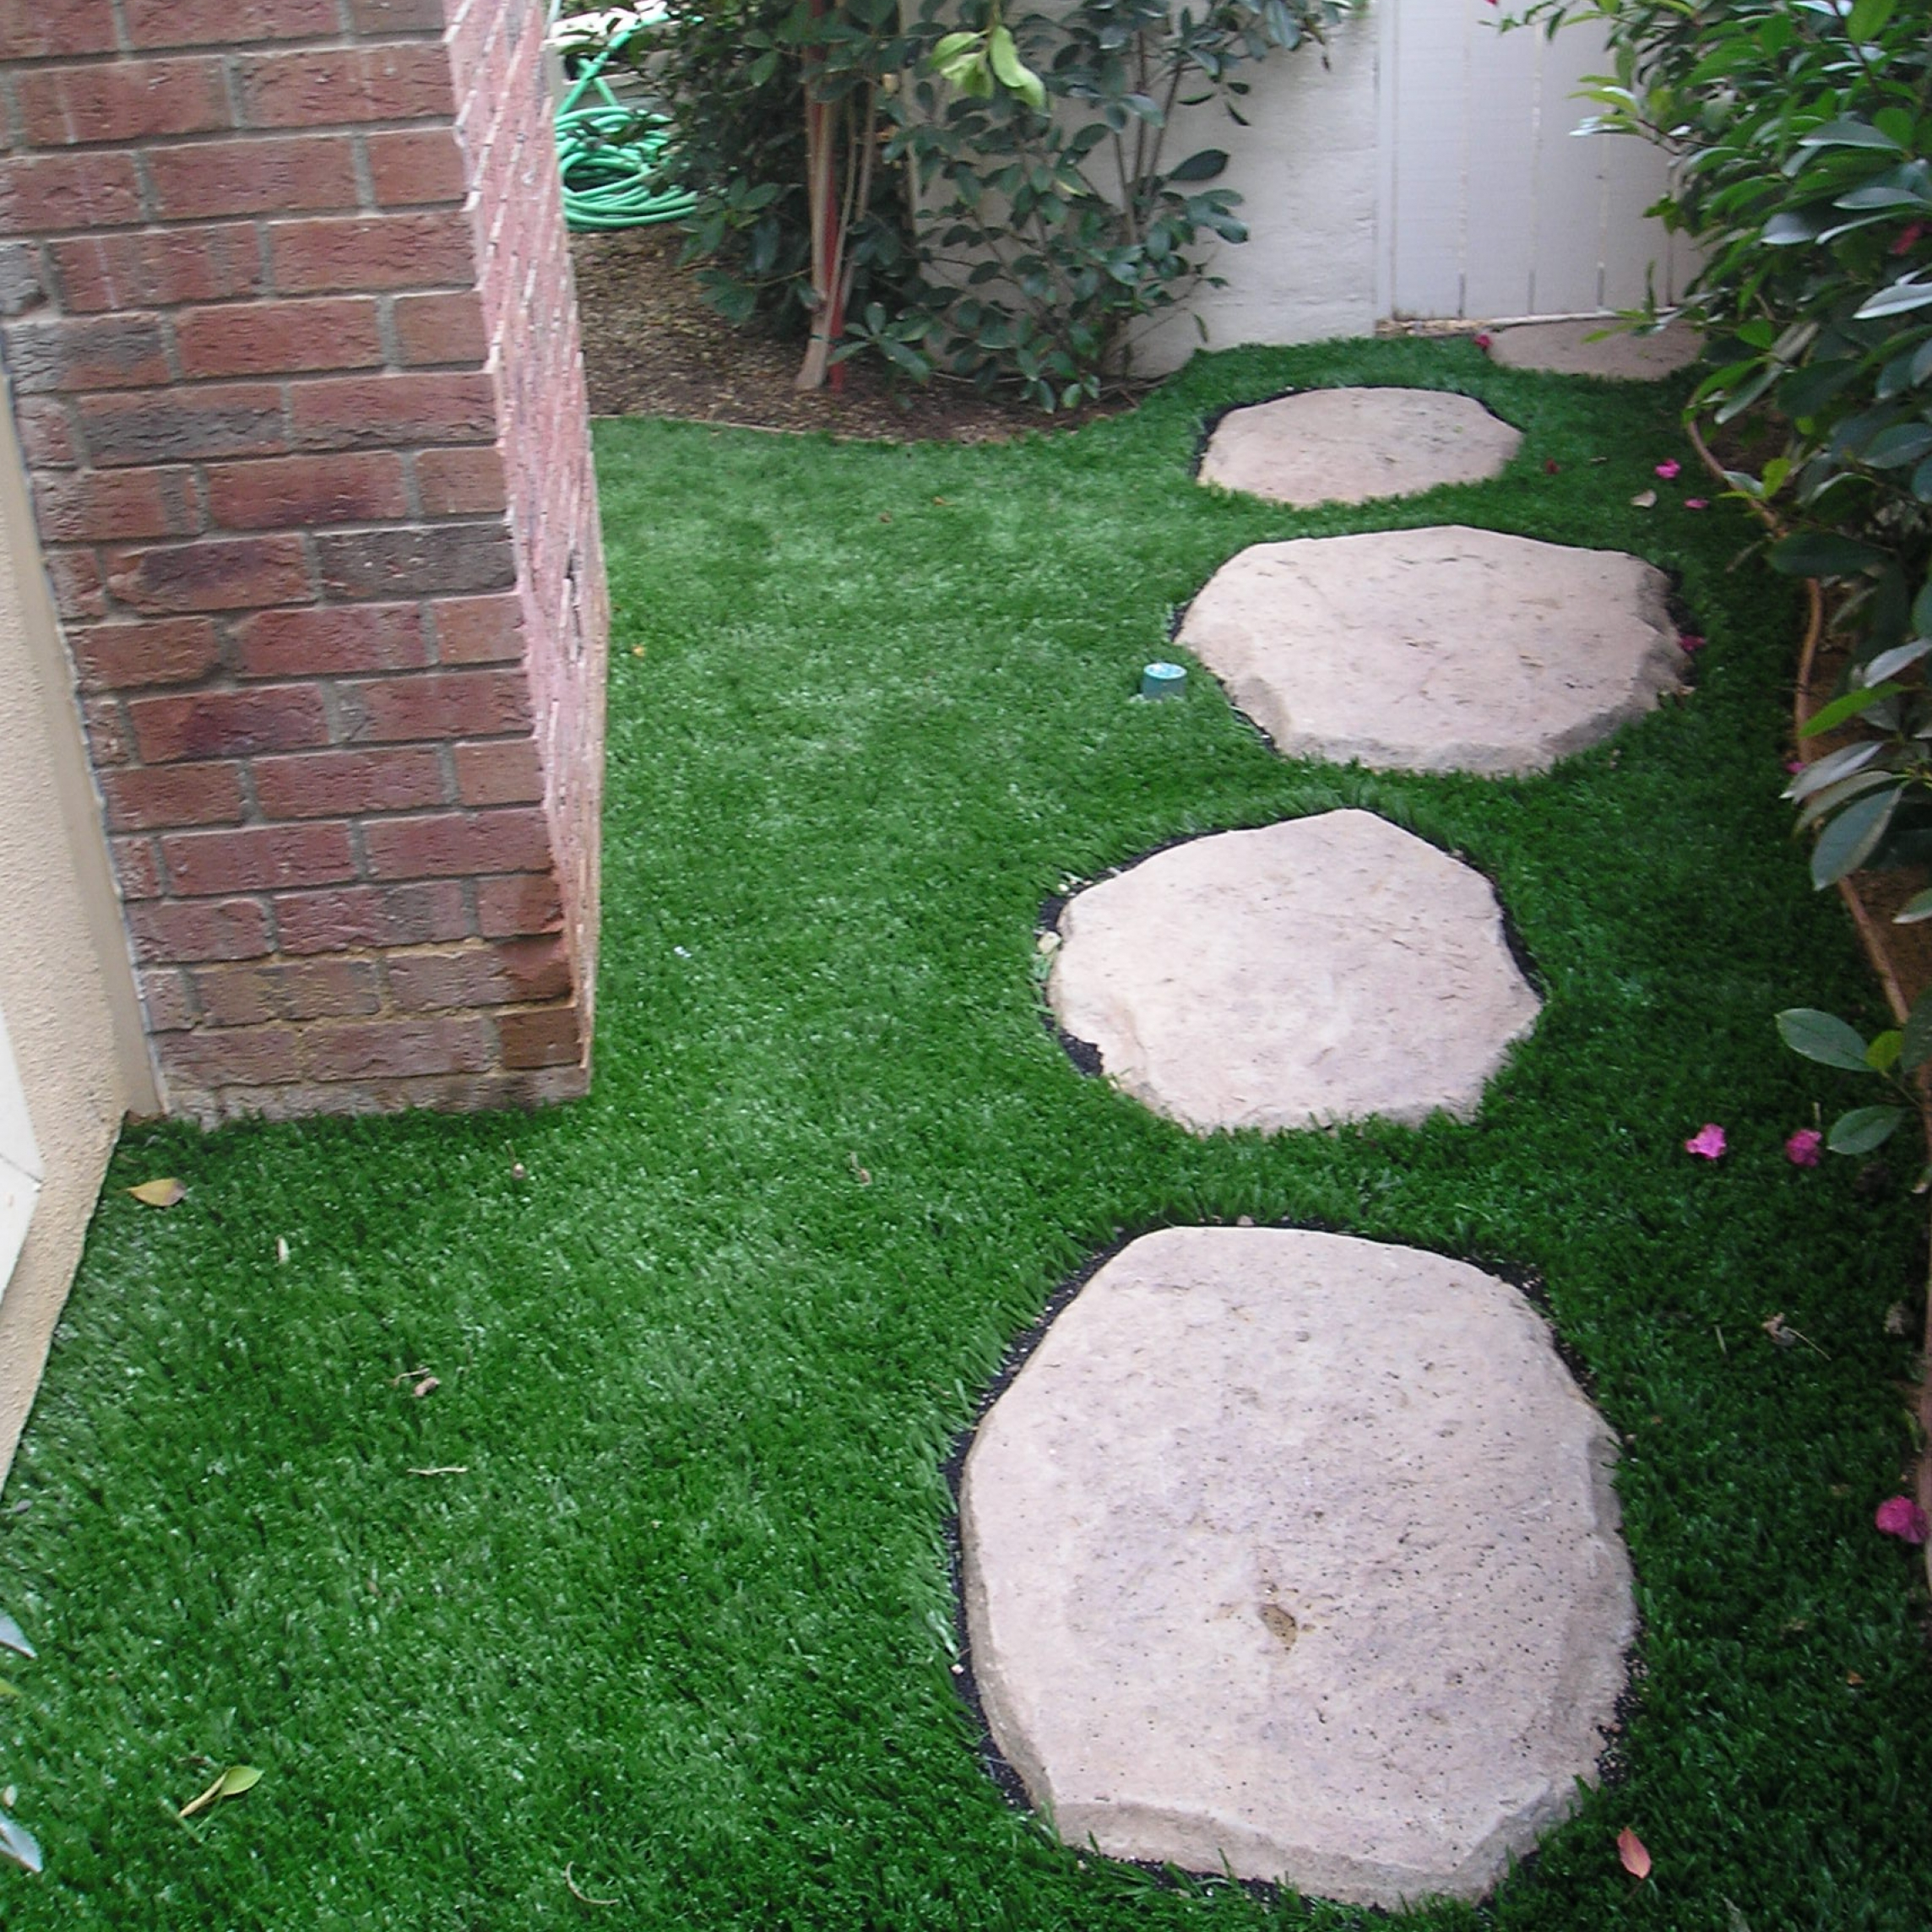 Premium M Blade-60 artificial turf,synthetic turf,artificial turf installation,how to install artificial turf,used artificial turf,backyard turf,turf backyard,fake grass for backyard,fake grass backyard,artificial grass backyard